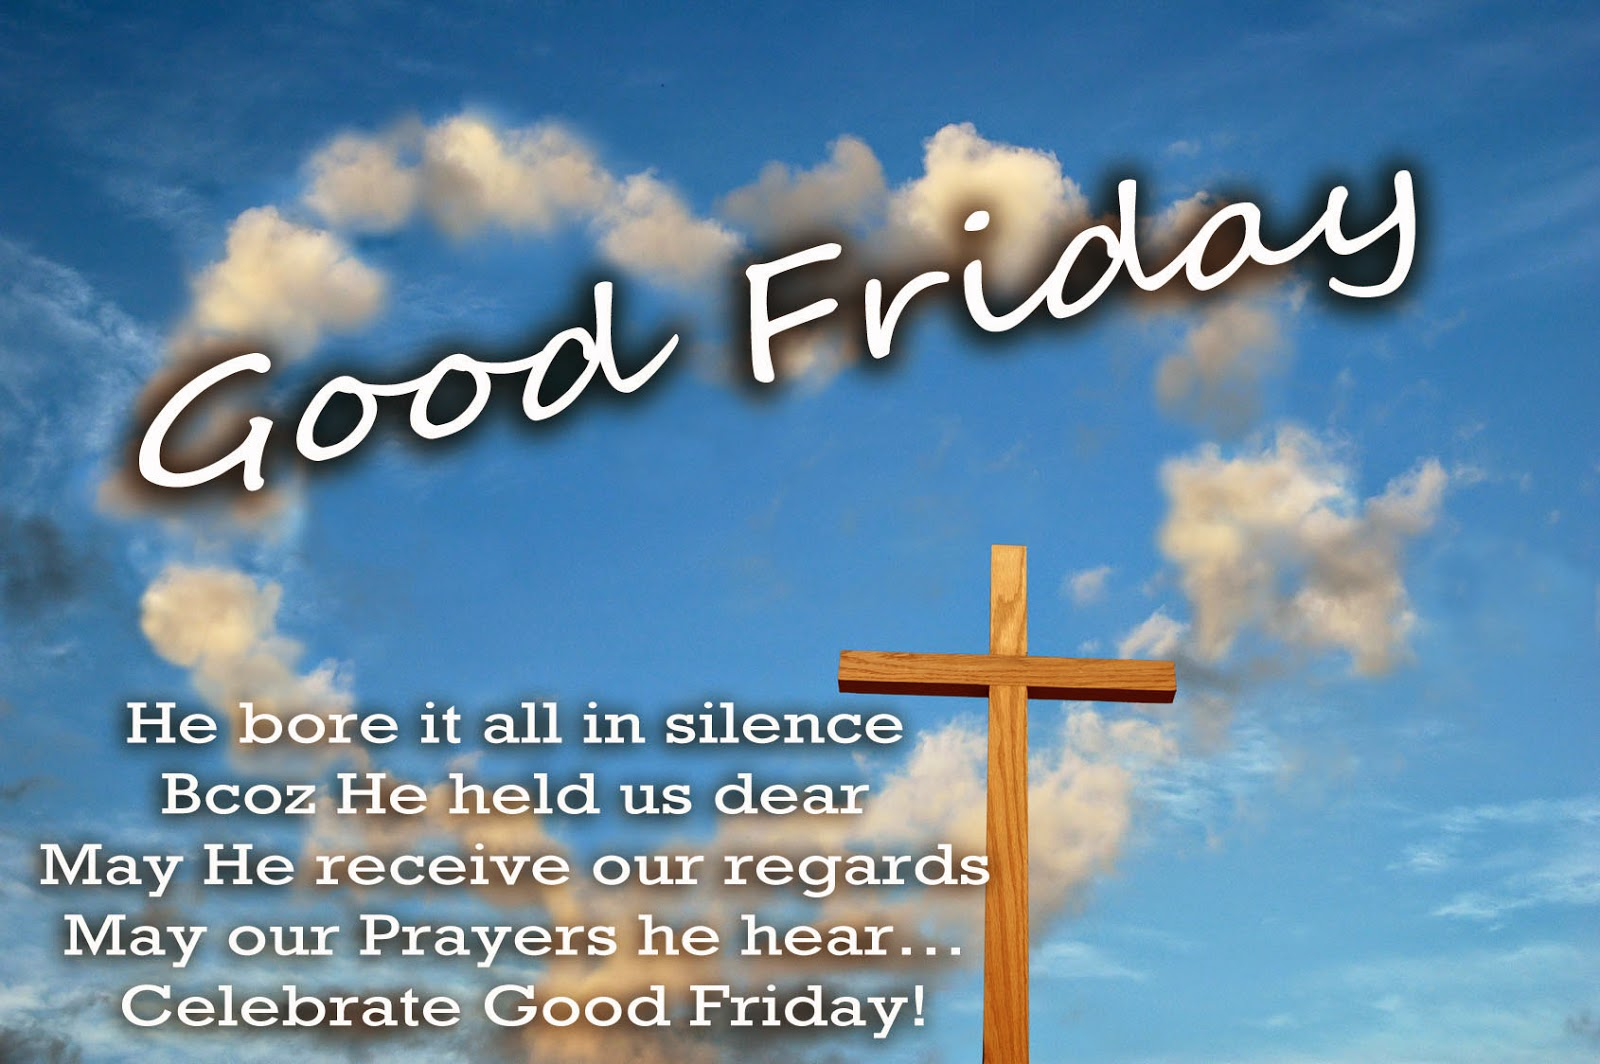 Good friday greetings greetings images and card of good friday 2018 happy good friday greeting card messages 3 kristyandbryce Choice Image